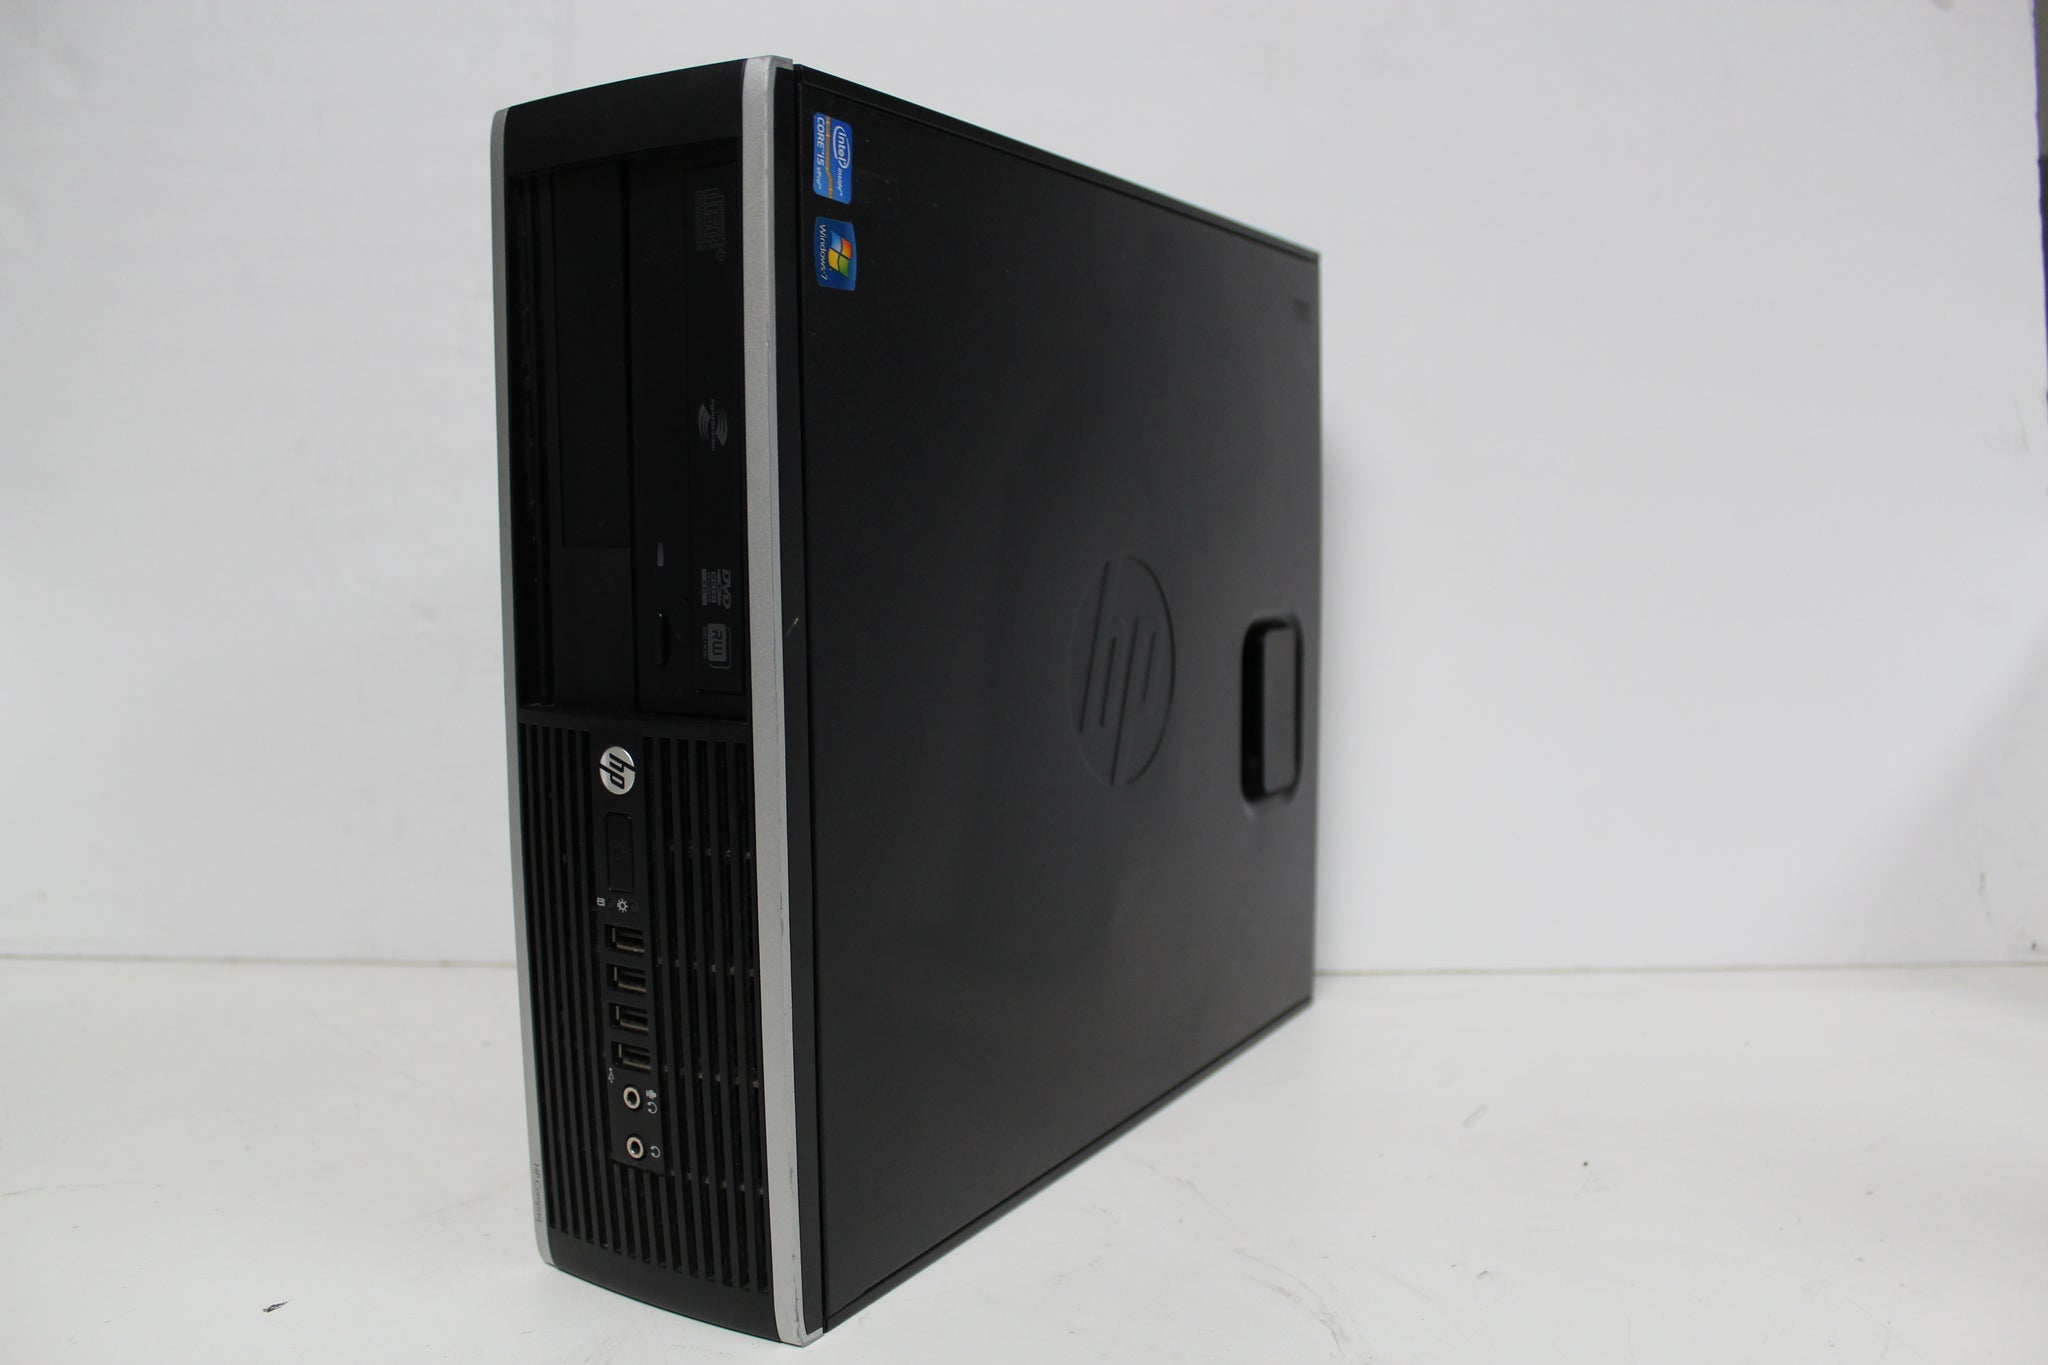 HP Compaq Elite 8200 Small Form Factor Refurbished Desktop Intel i5 Processor